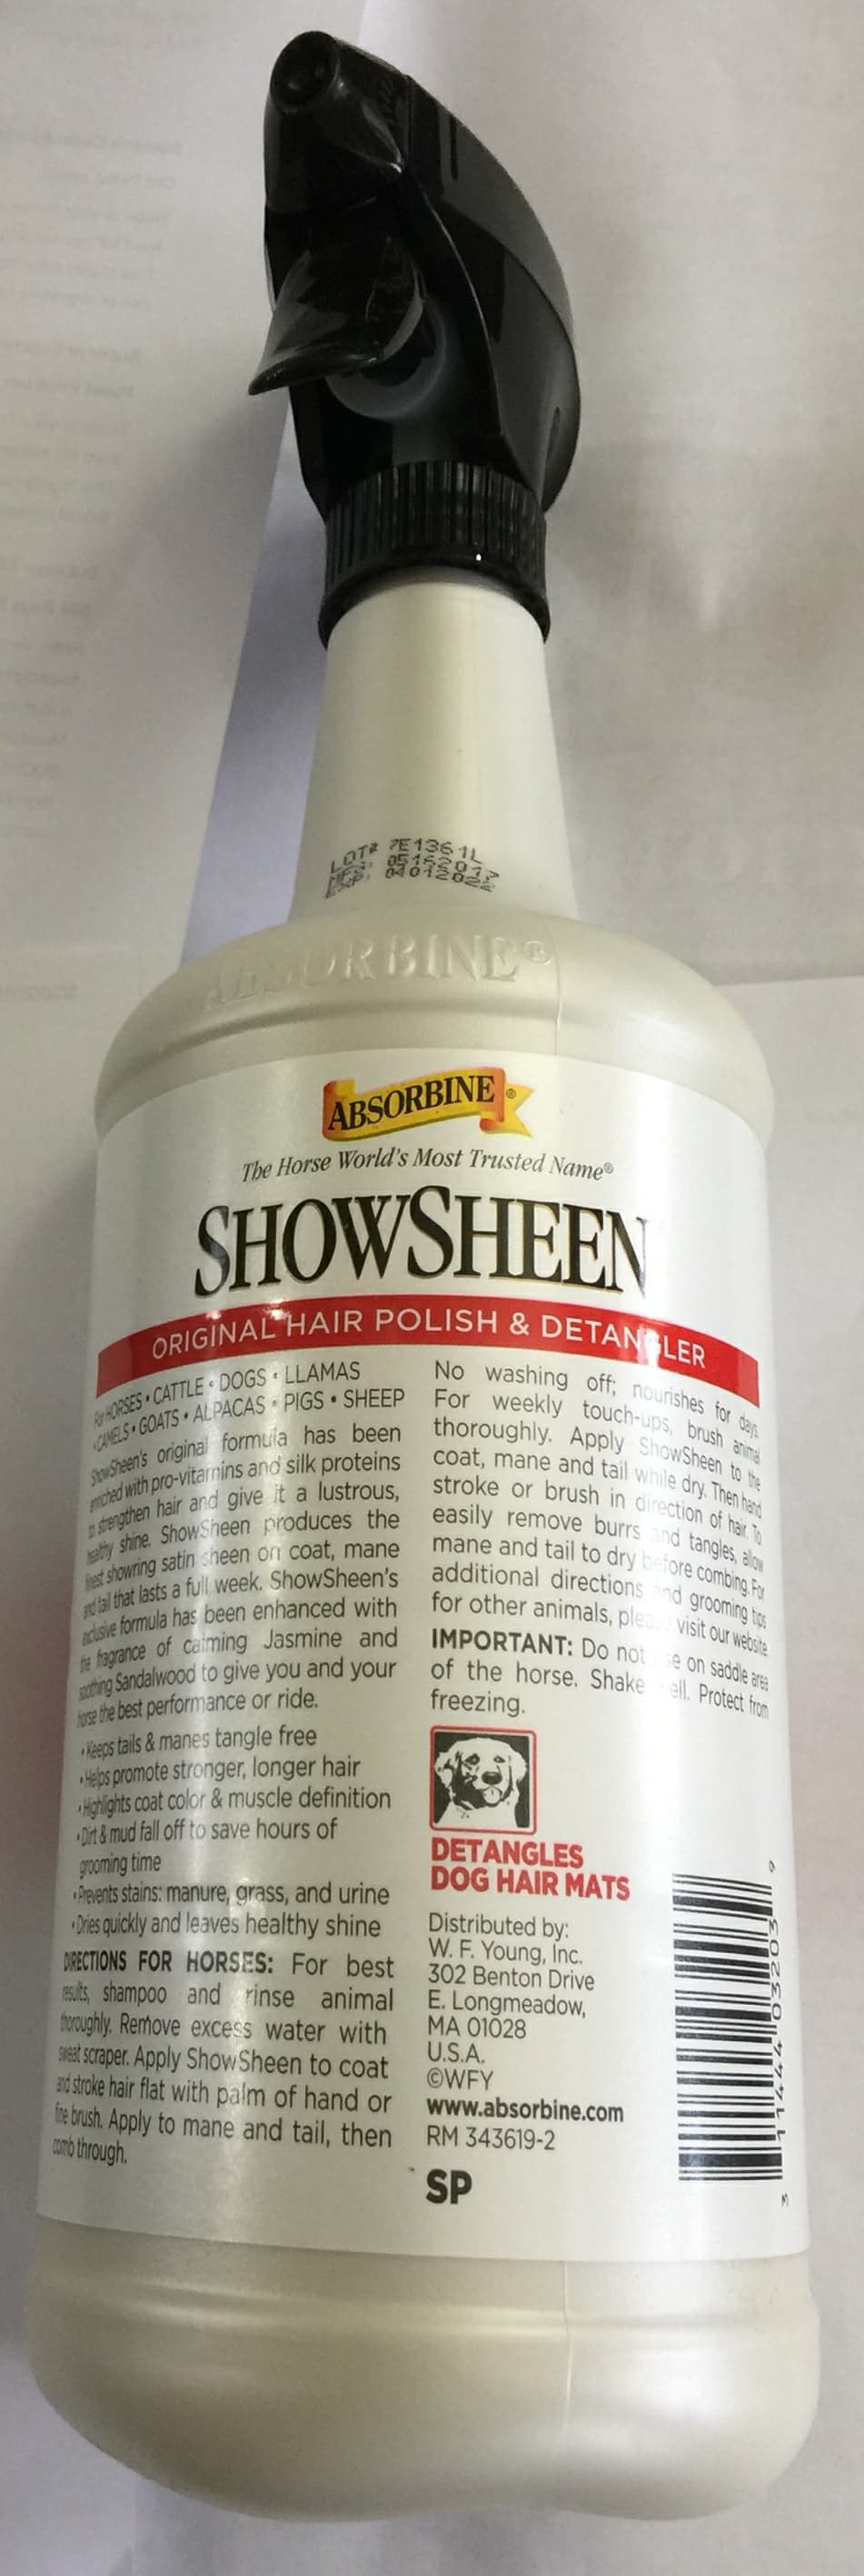 Showsheen Hair Polish & Detangler 32oz Spray Bottle